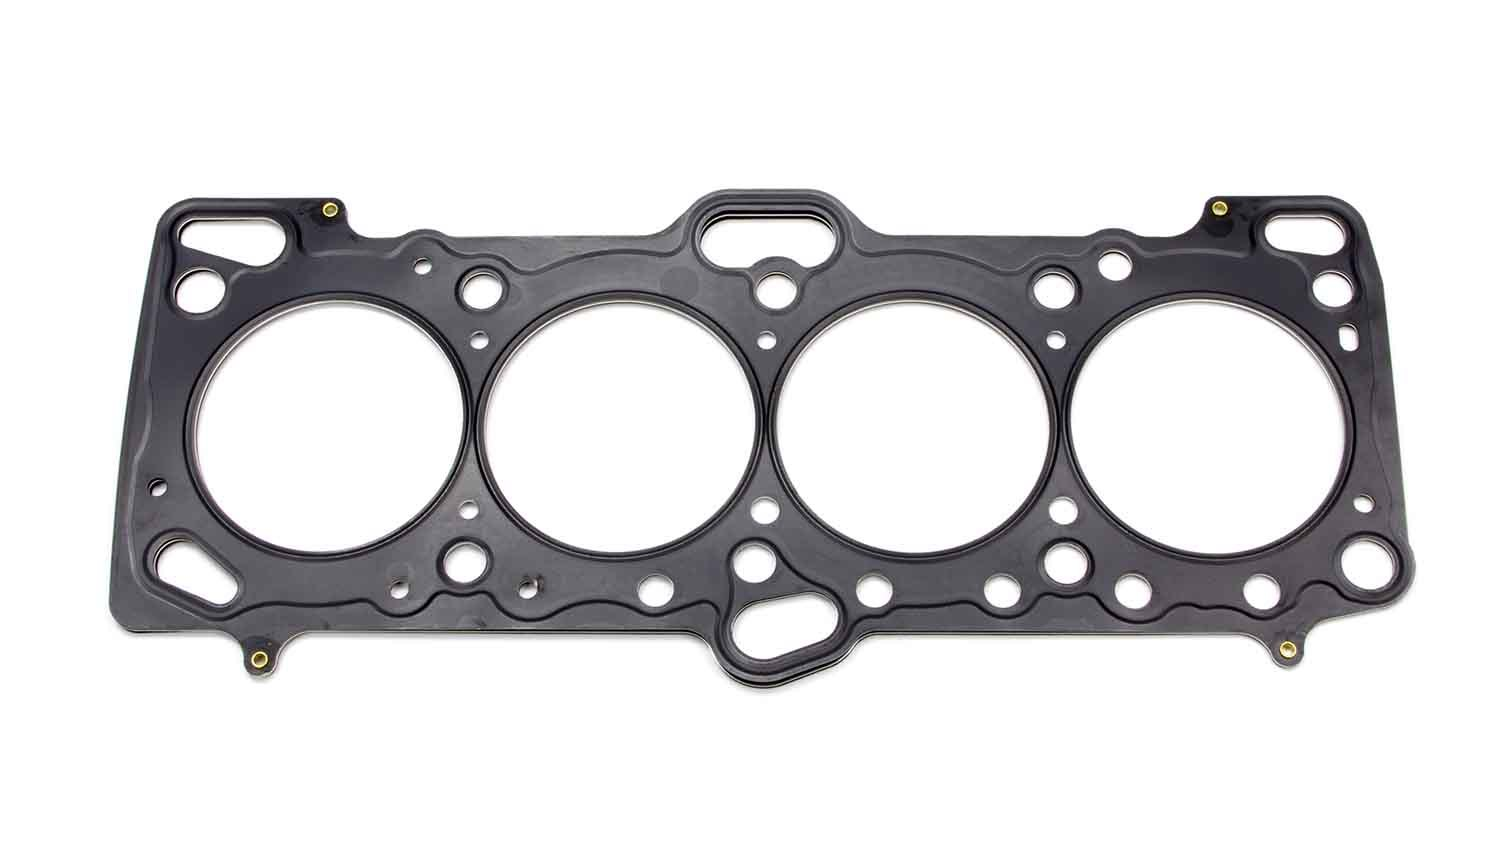 Cometic Gaskets C4234-051 Cylinder Head Gasket, 86.0 mm Bore, 0.051 in Compression Thickness, Multi-Layered Steel, Mitsubishi 4G63, Each